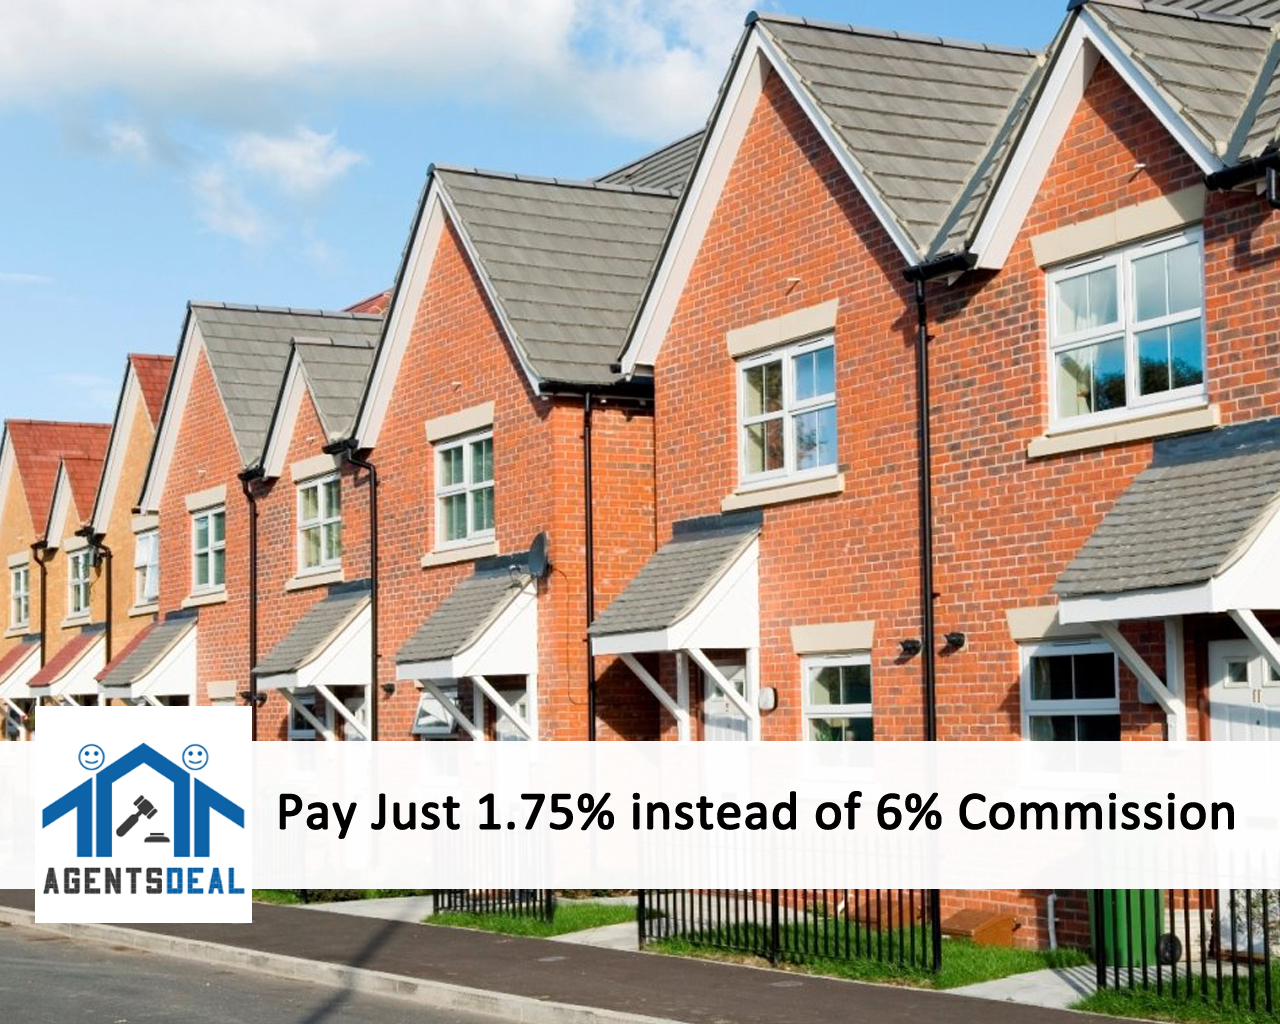 Pay Just 1.75% instead of 6% Commission to Sell Your Home!